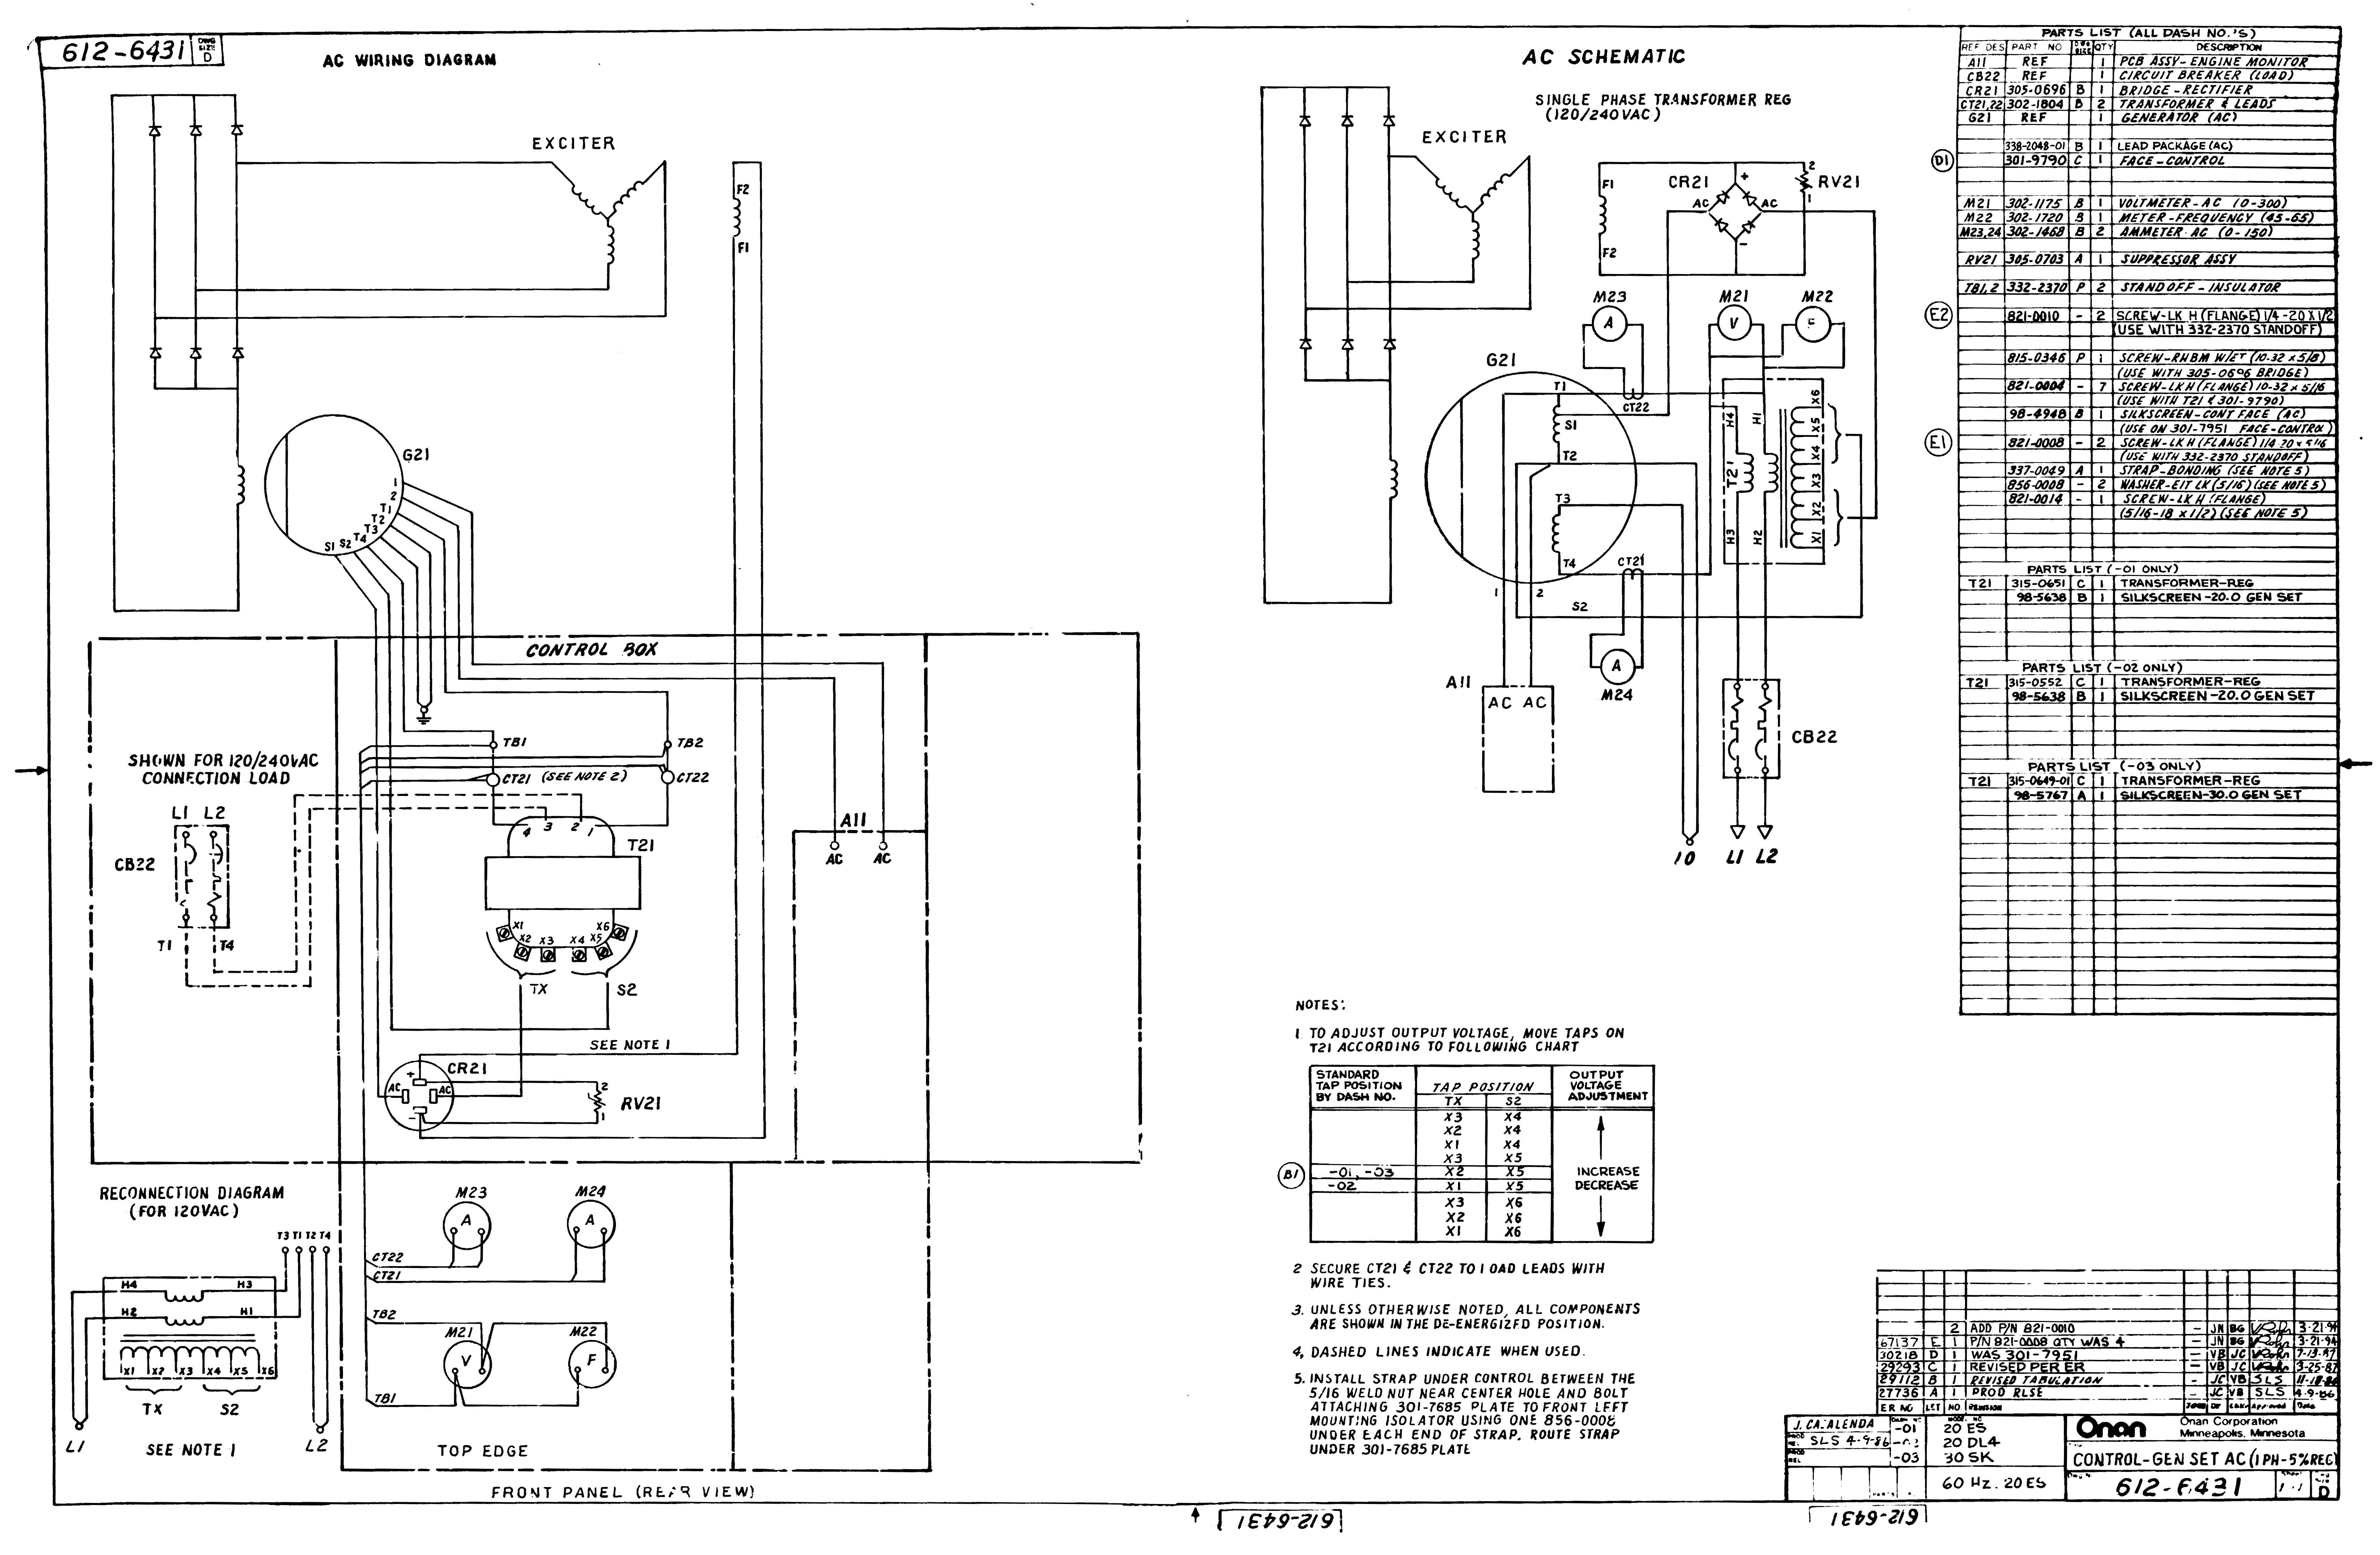 wiring diagram for onan generator Download-Generator Wiring Diagram Best Best Wiring Diagram Od Rv Park 5-o